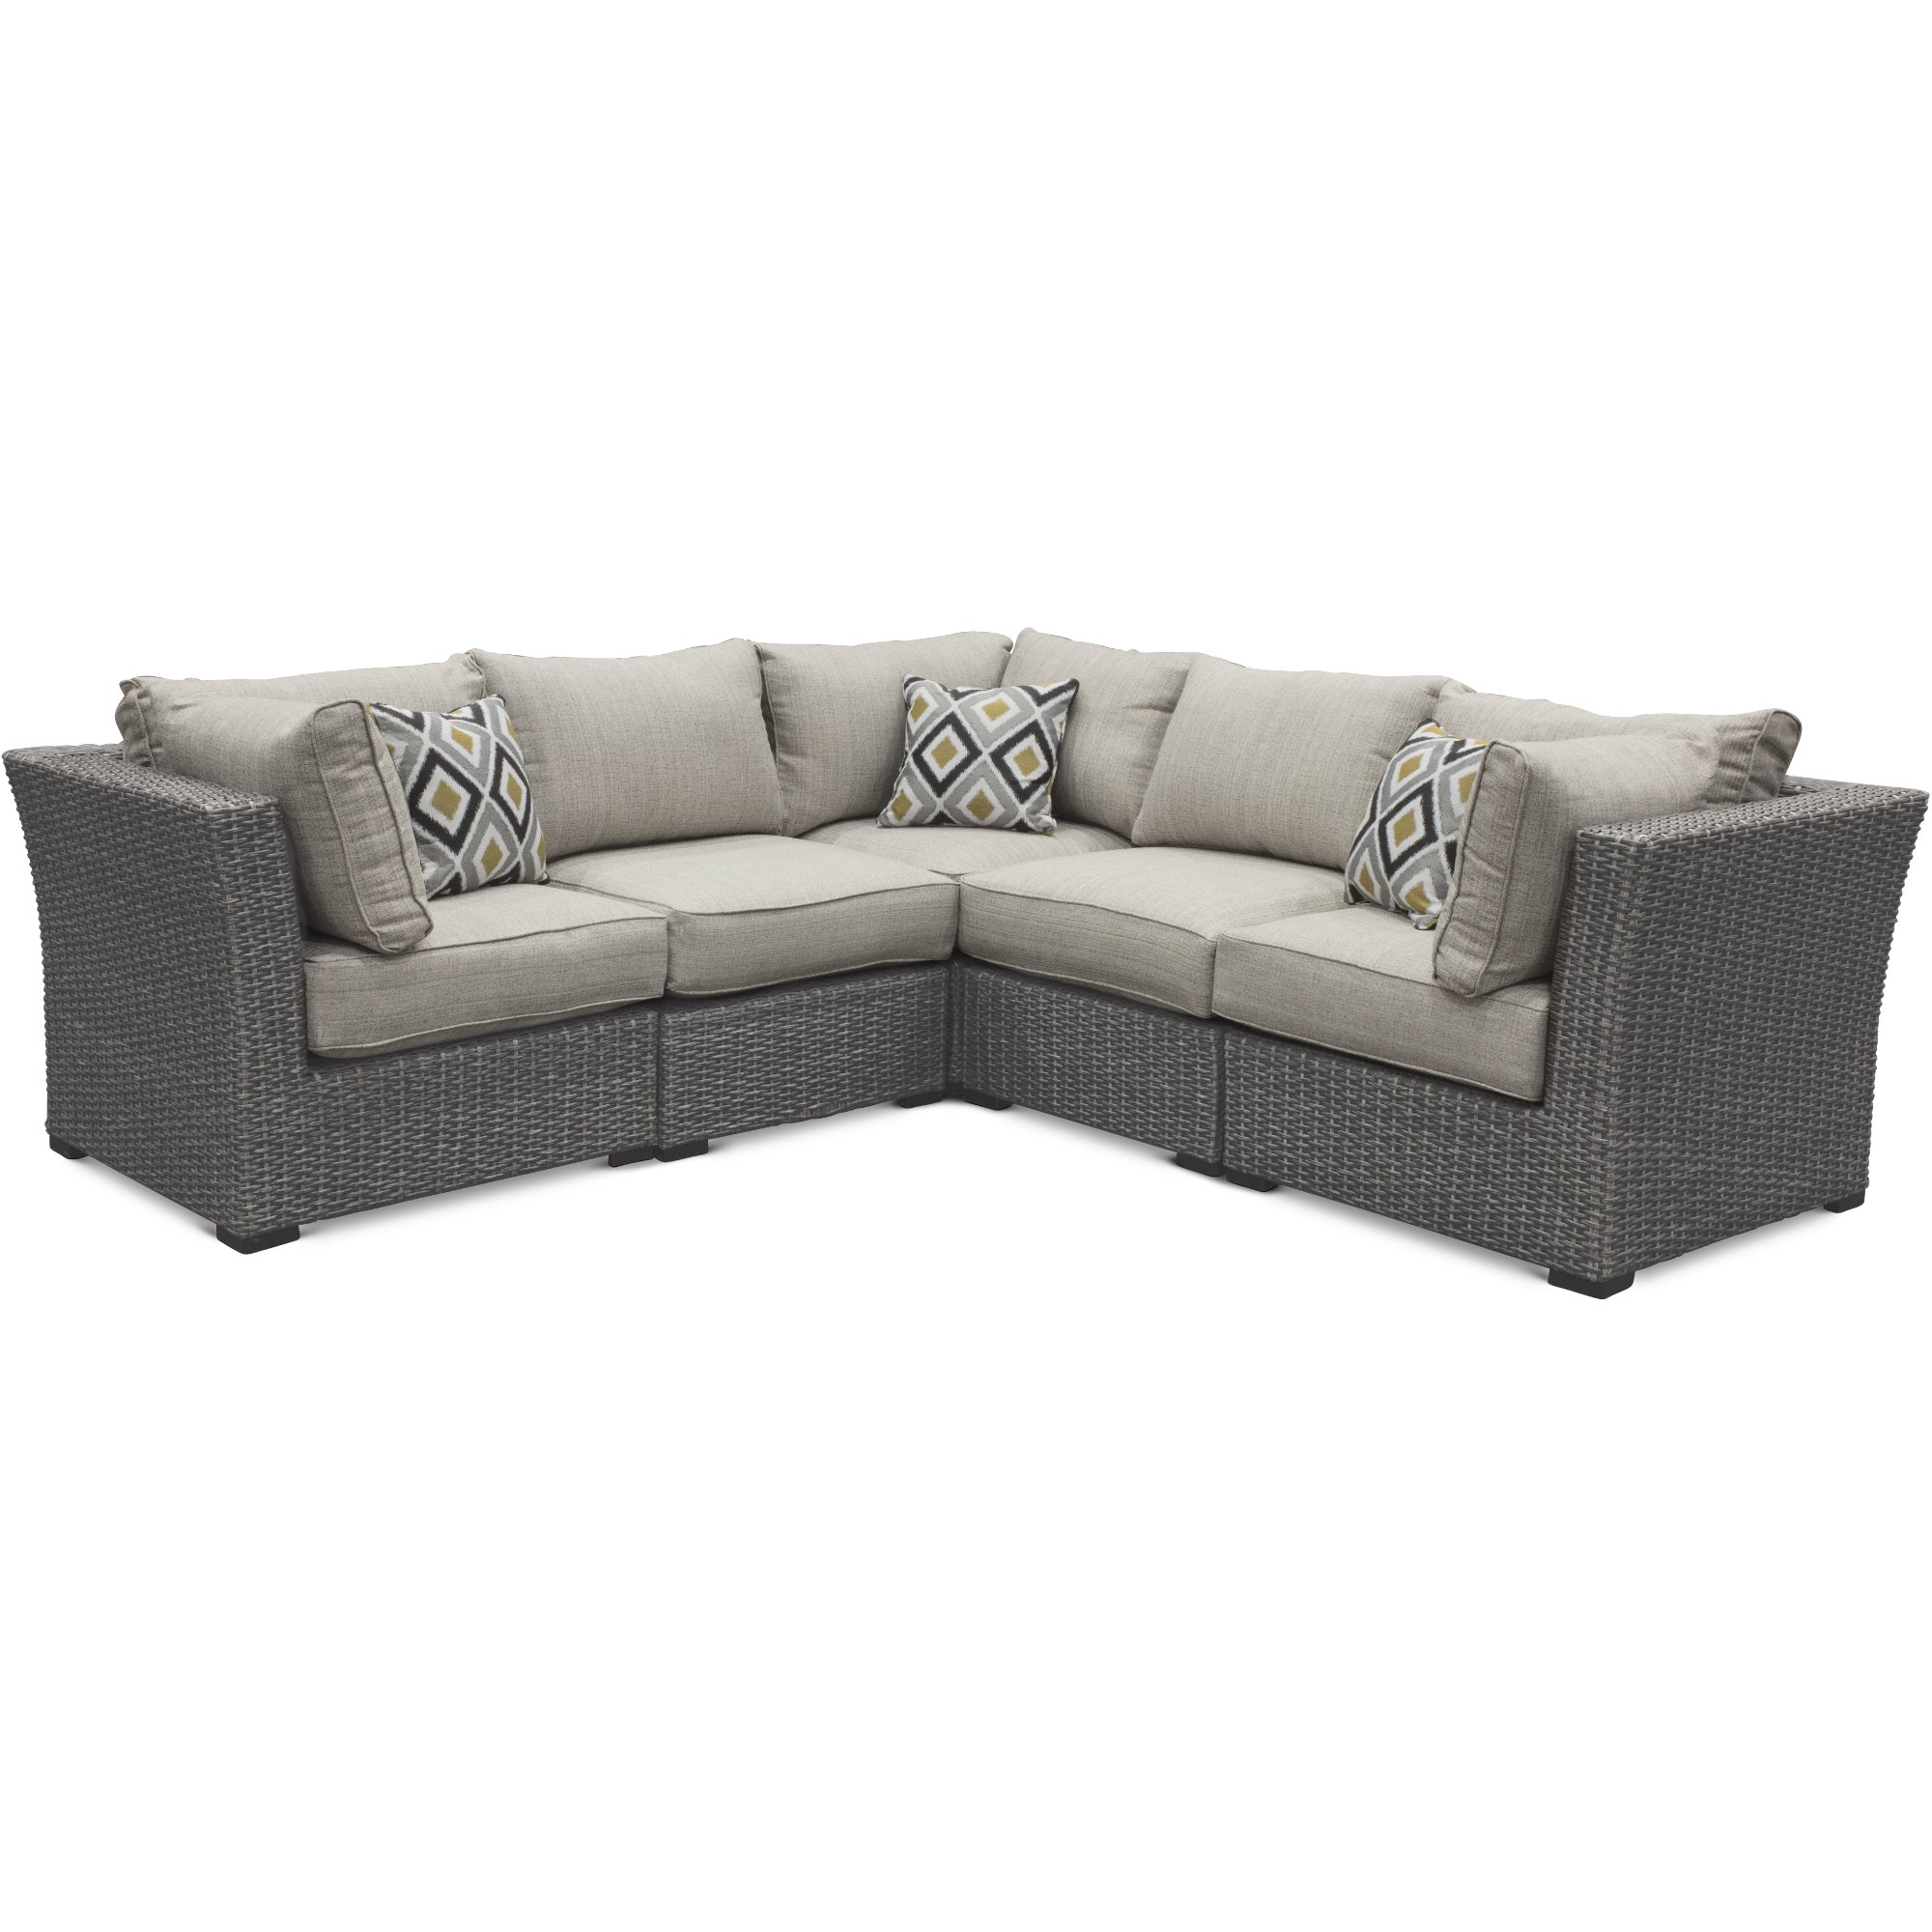 5 Piece Outdoor Patio Sectional Sofa Tahoe Rc Willey